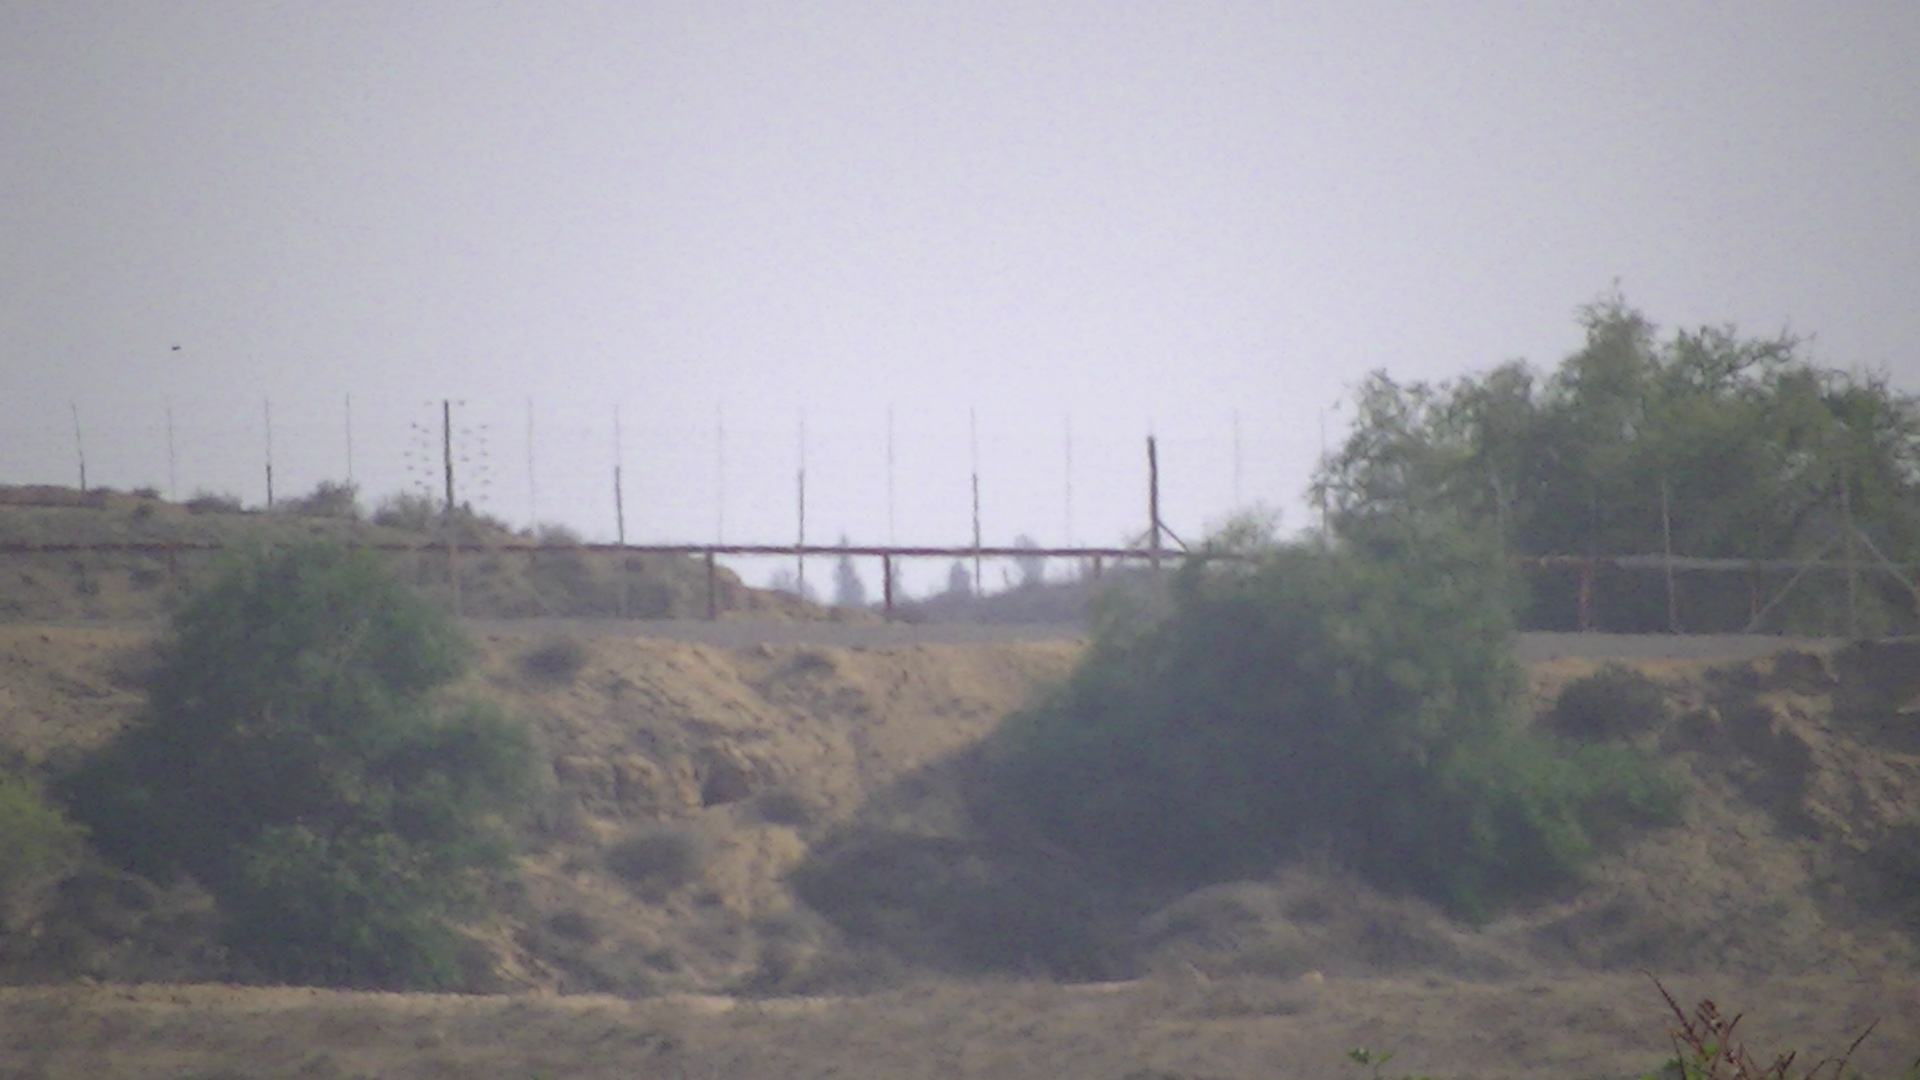 The Israeli border fence in Beit Hanoun - Picture taken by Corporate Watch, November 2013